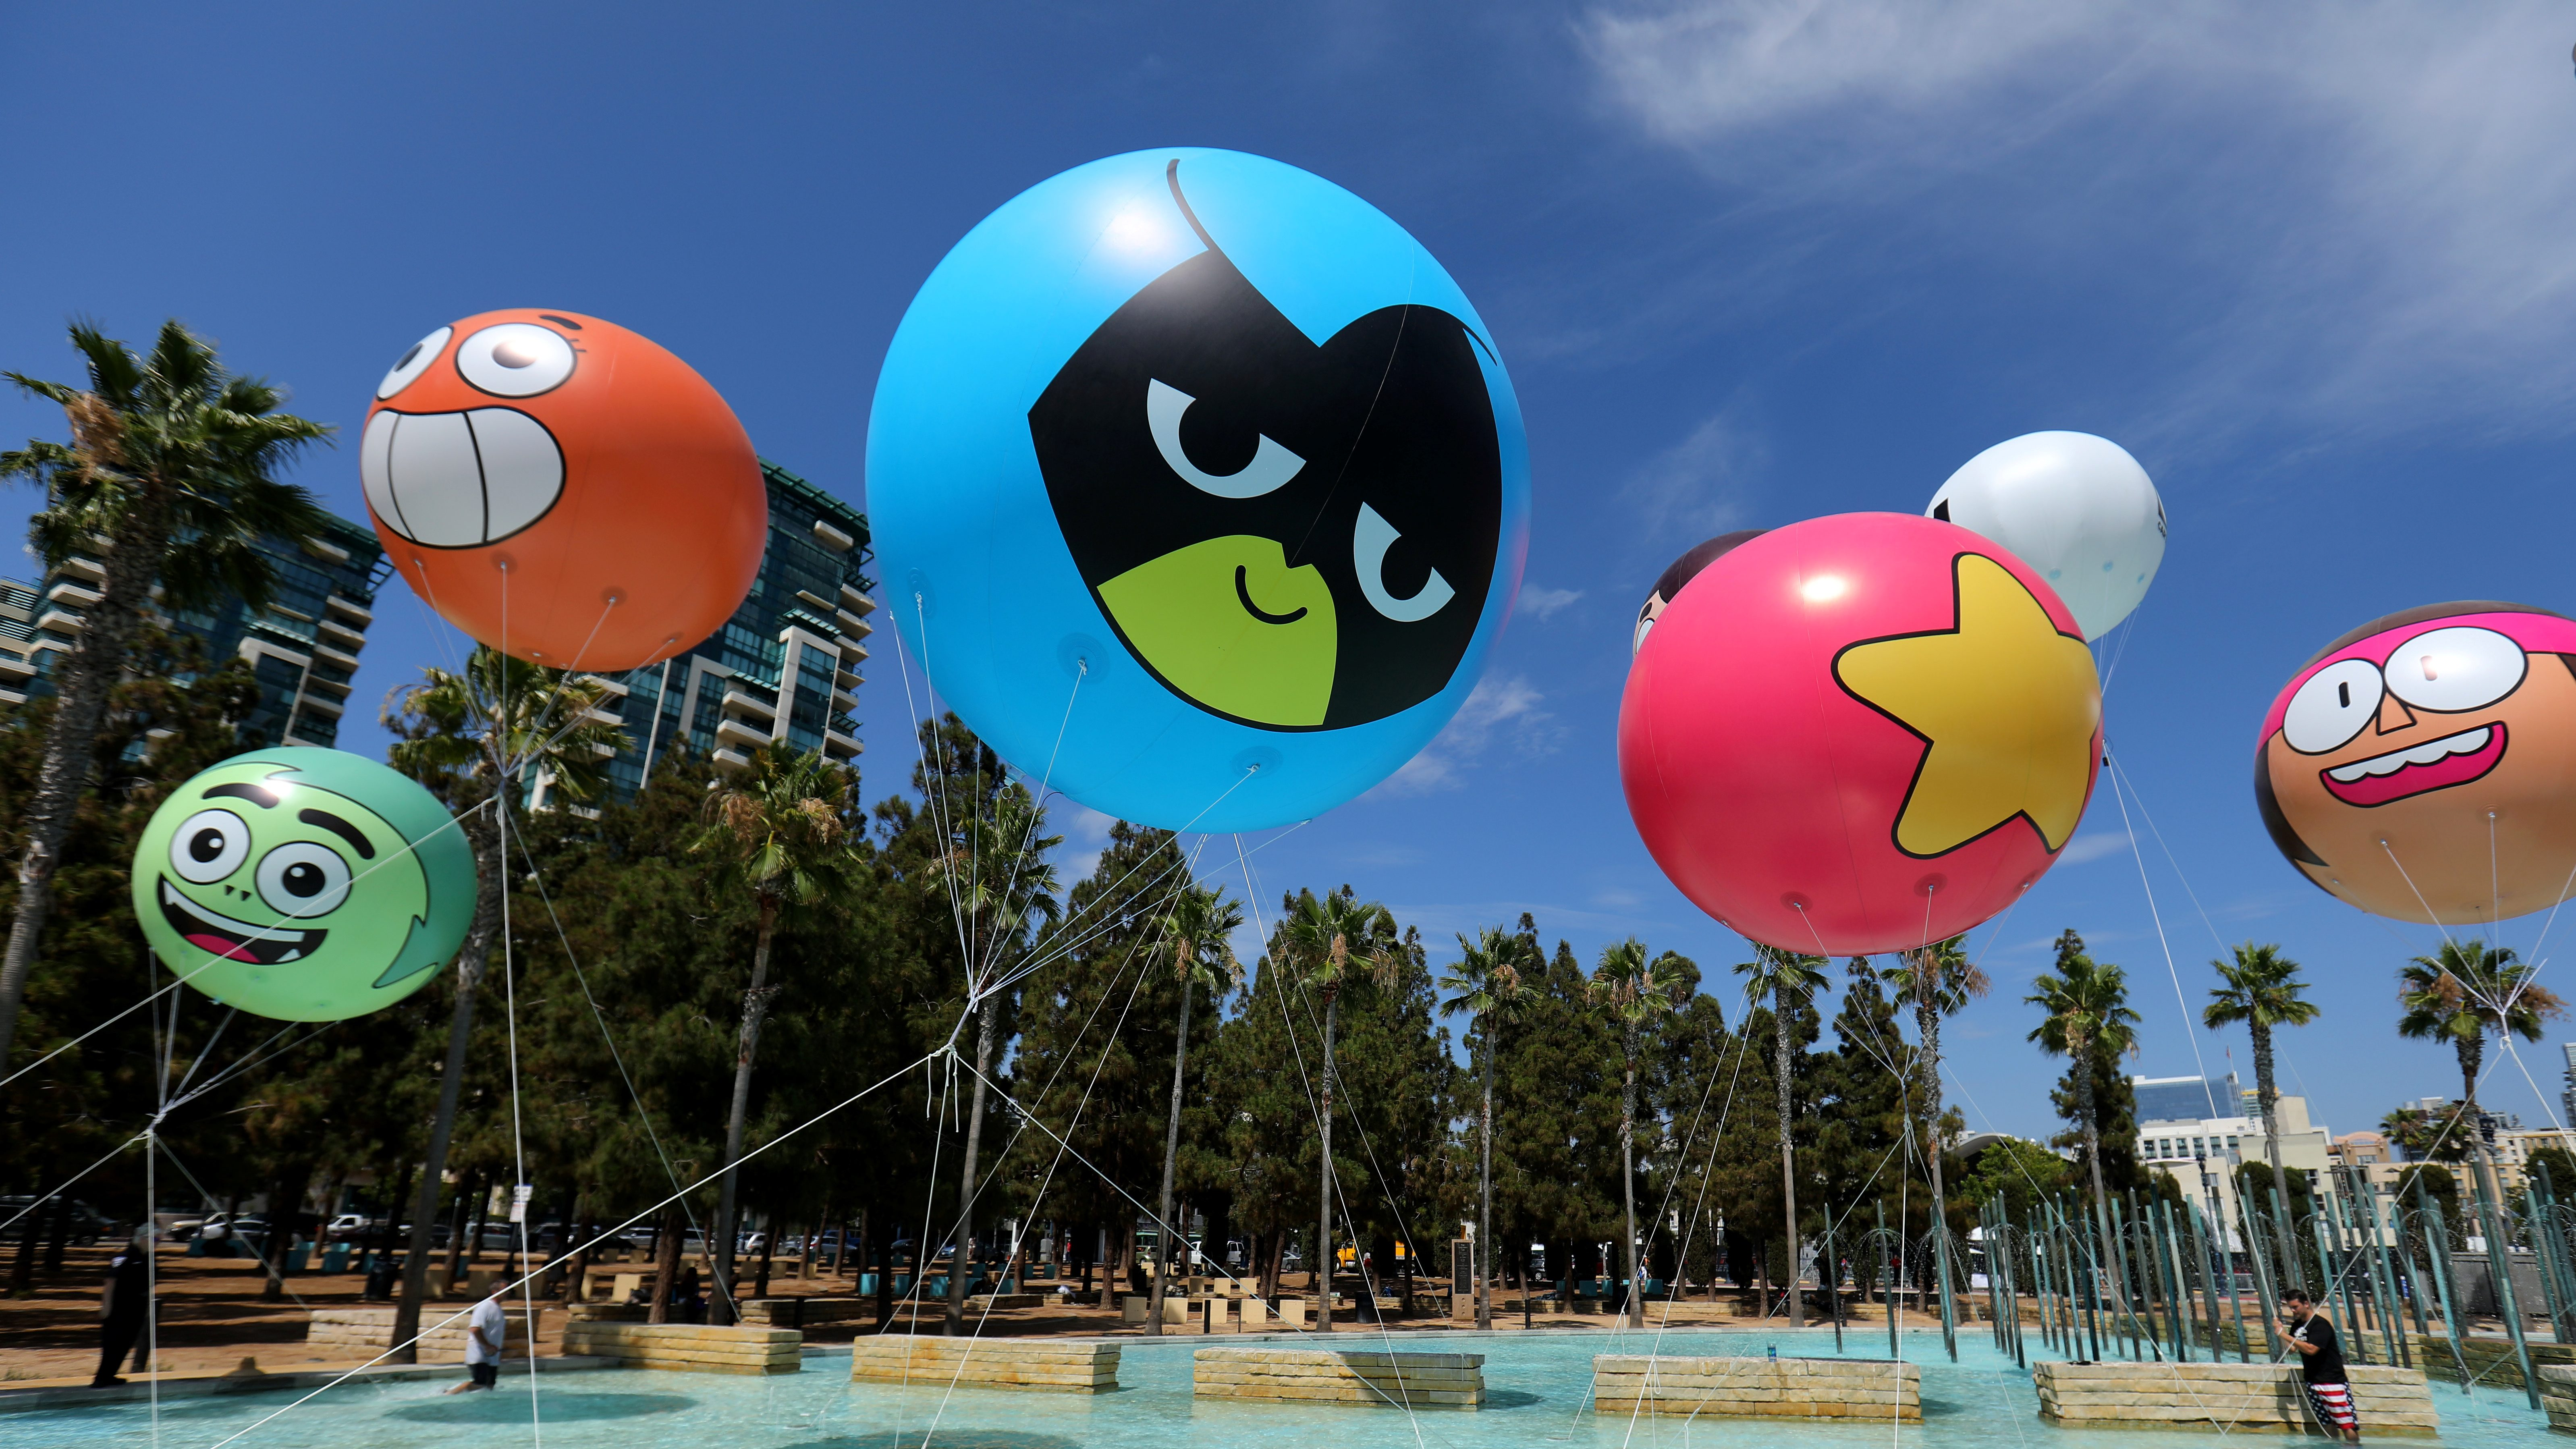 Images of cartoon network balloons with character's faces on them.